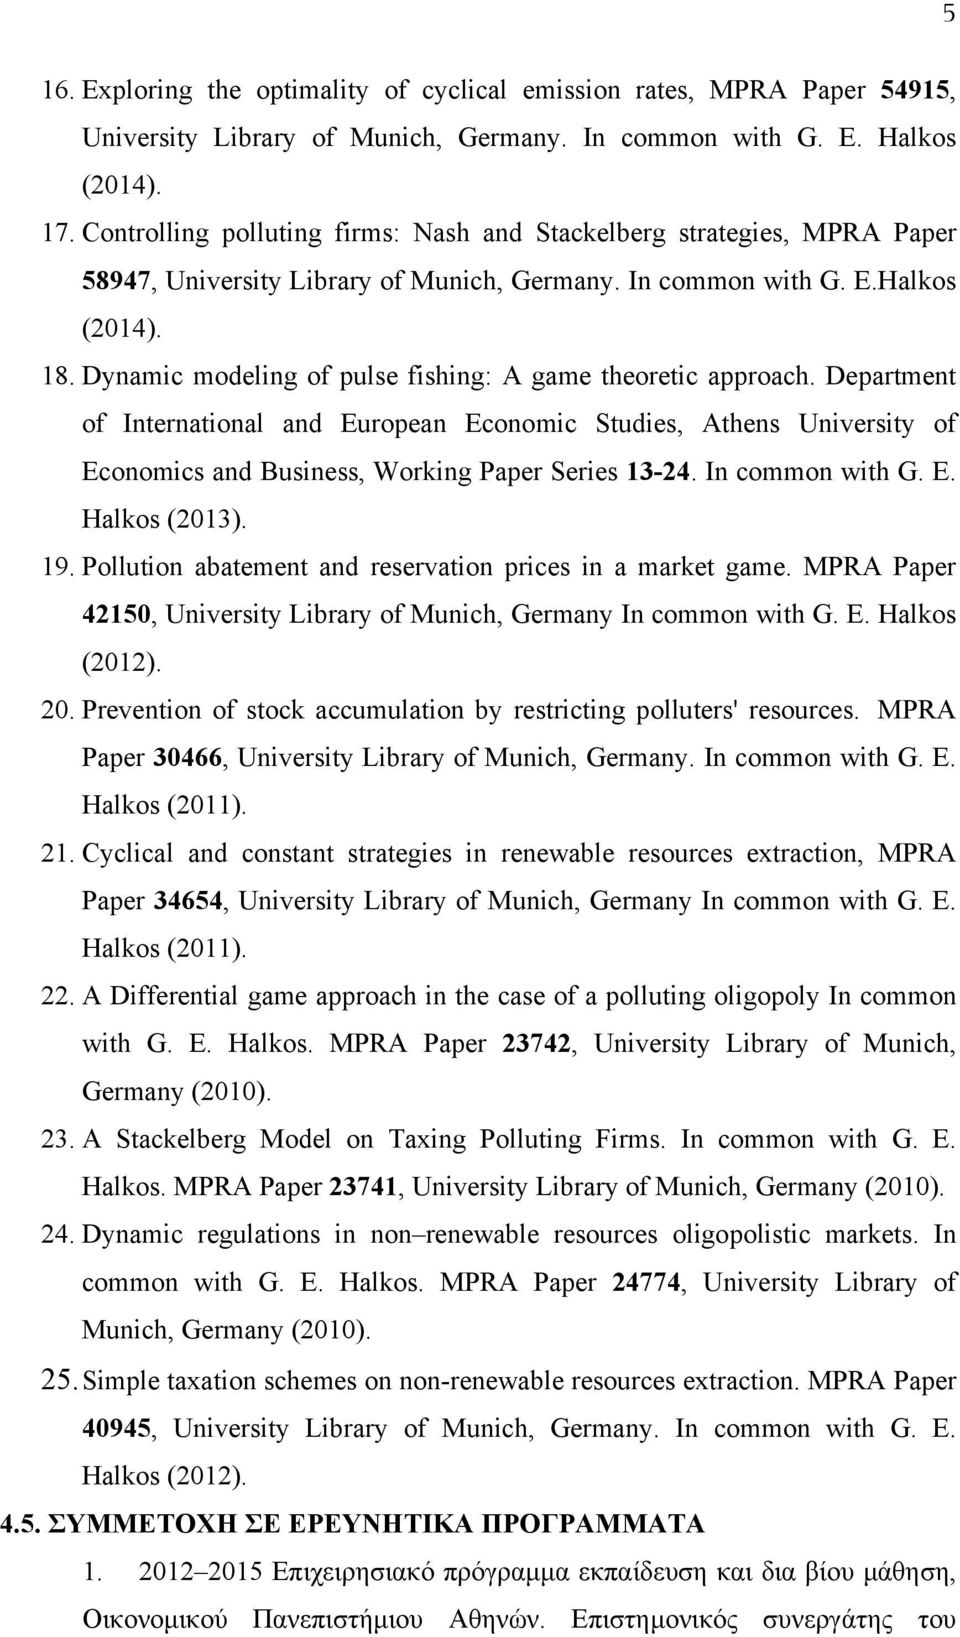 Dynamic modeling of pulse fishing: A game theoretic approach. Department of International and European Economic Studies, Athens University of Economics and Business, Working Paper Series 13-24.